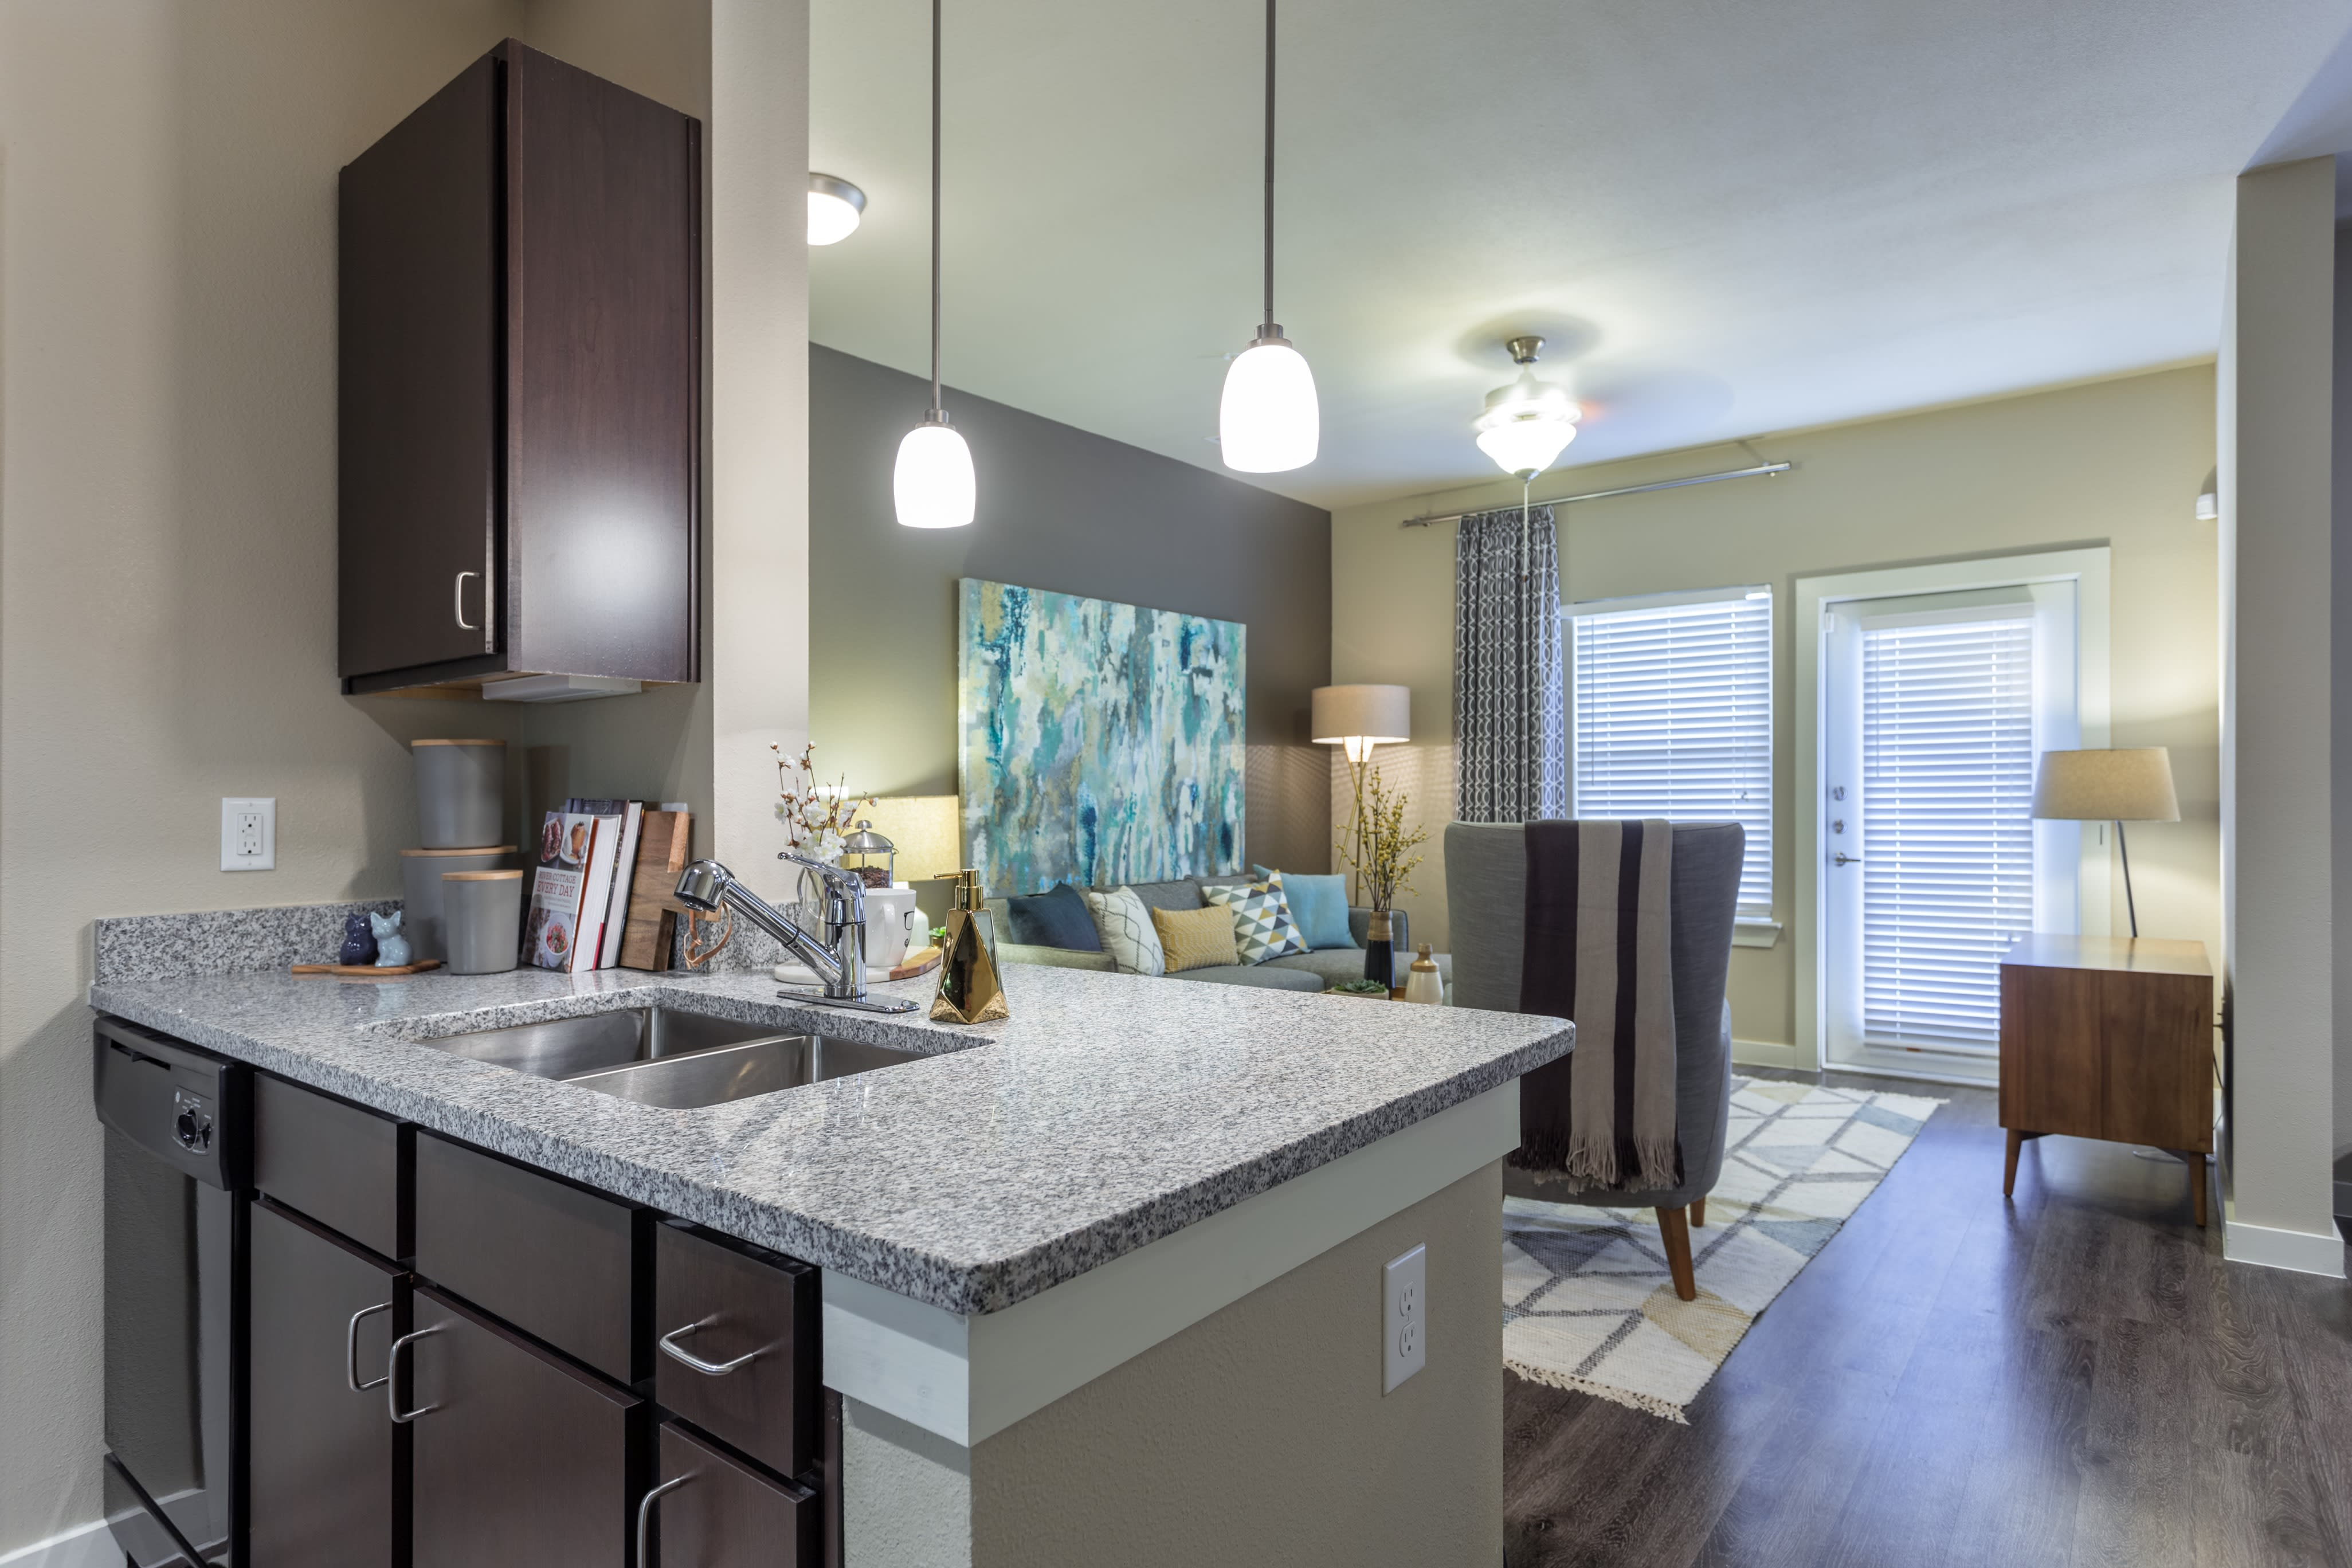 Modern kitchen with a bar overlooking the living room in an apartment at Encore 281 in San Antonio, Texas